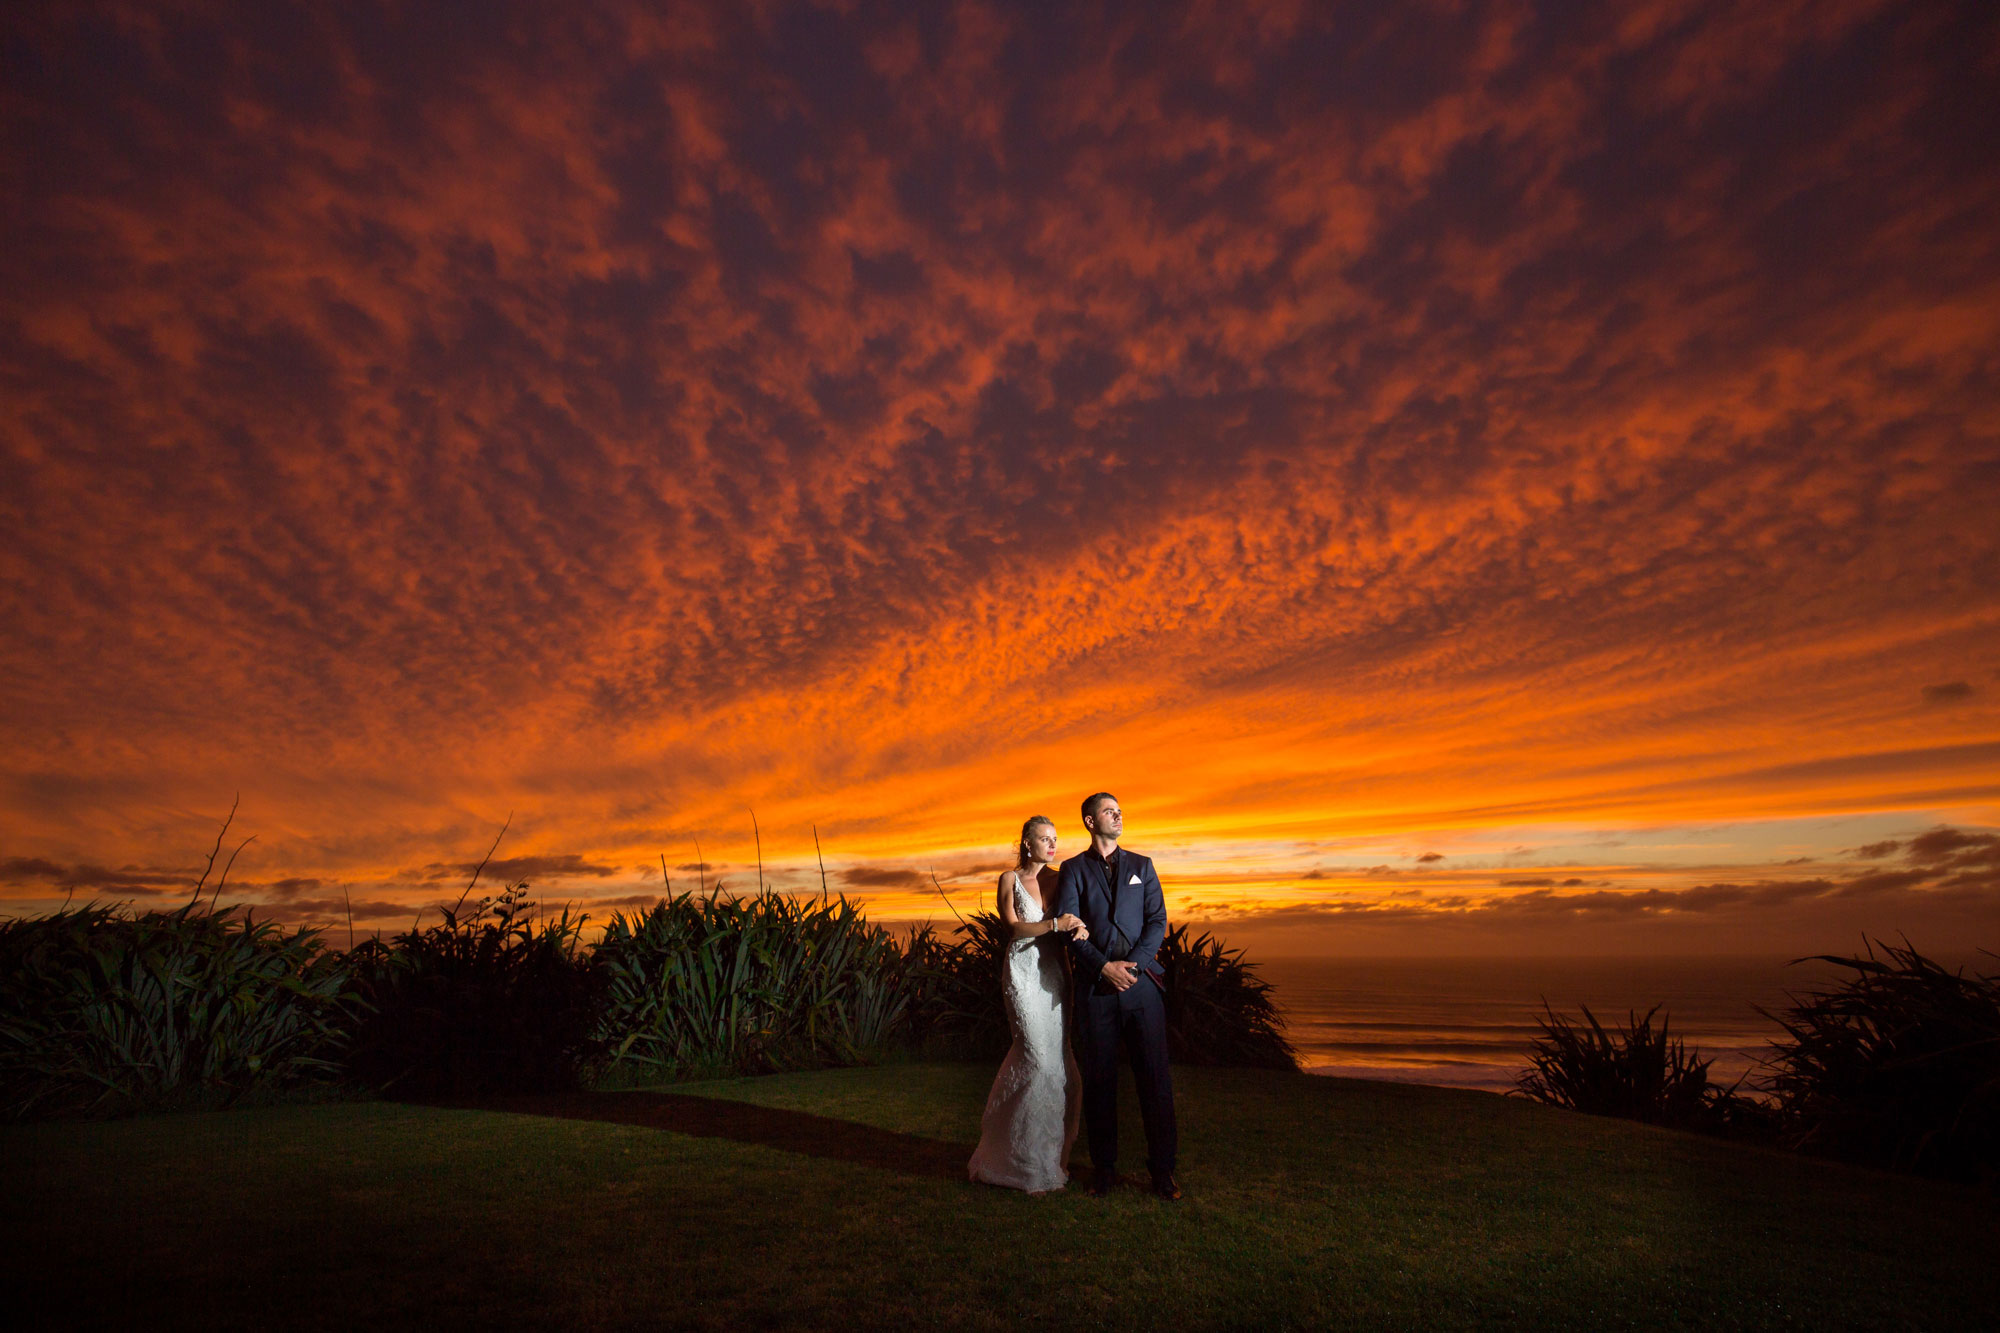 castaways sunset wedding photo